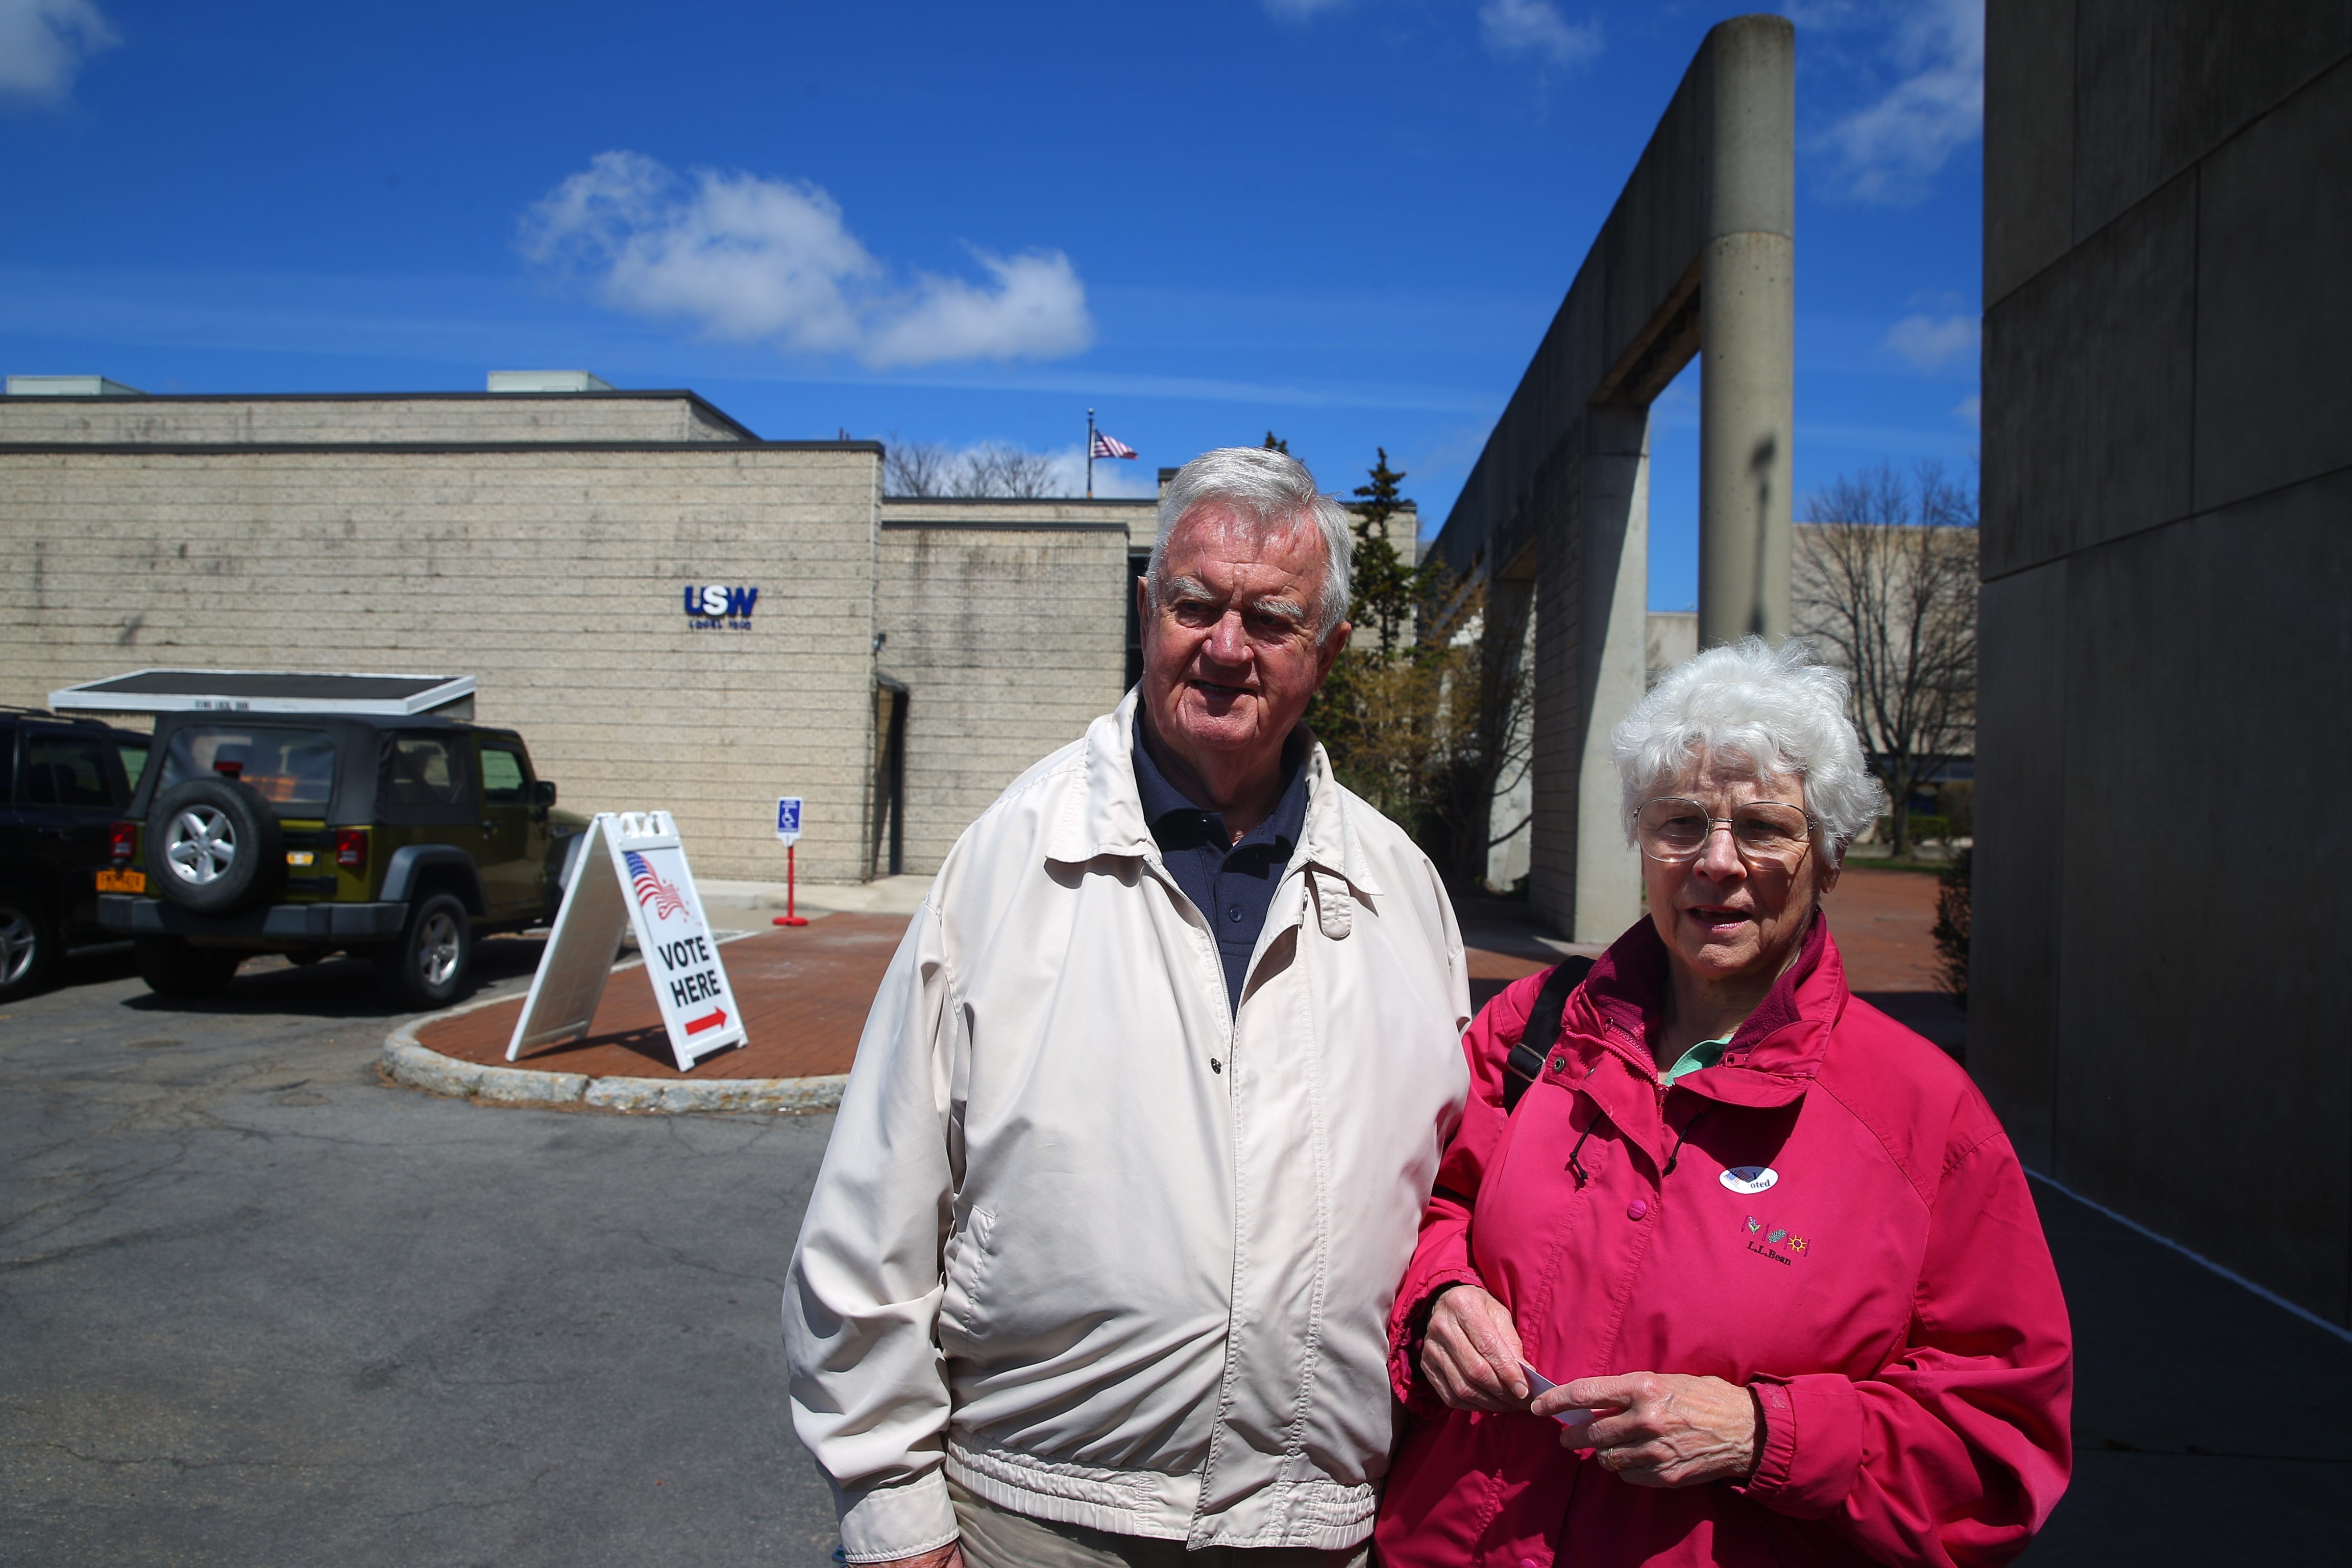 Richard and Joan Quigley voted for John Kasich in the Republican presidential primary at the United Steelworkers Local 1000 Union Hall in Corning on April 19.